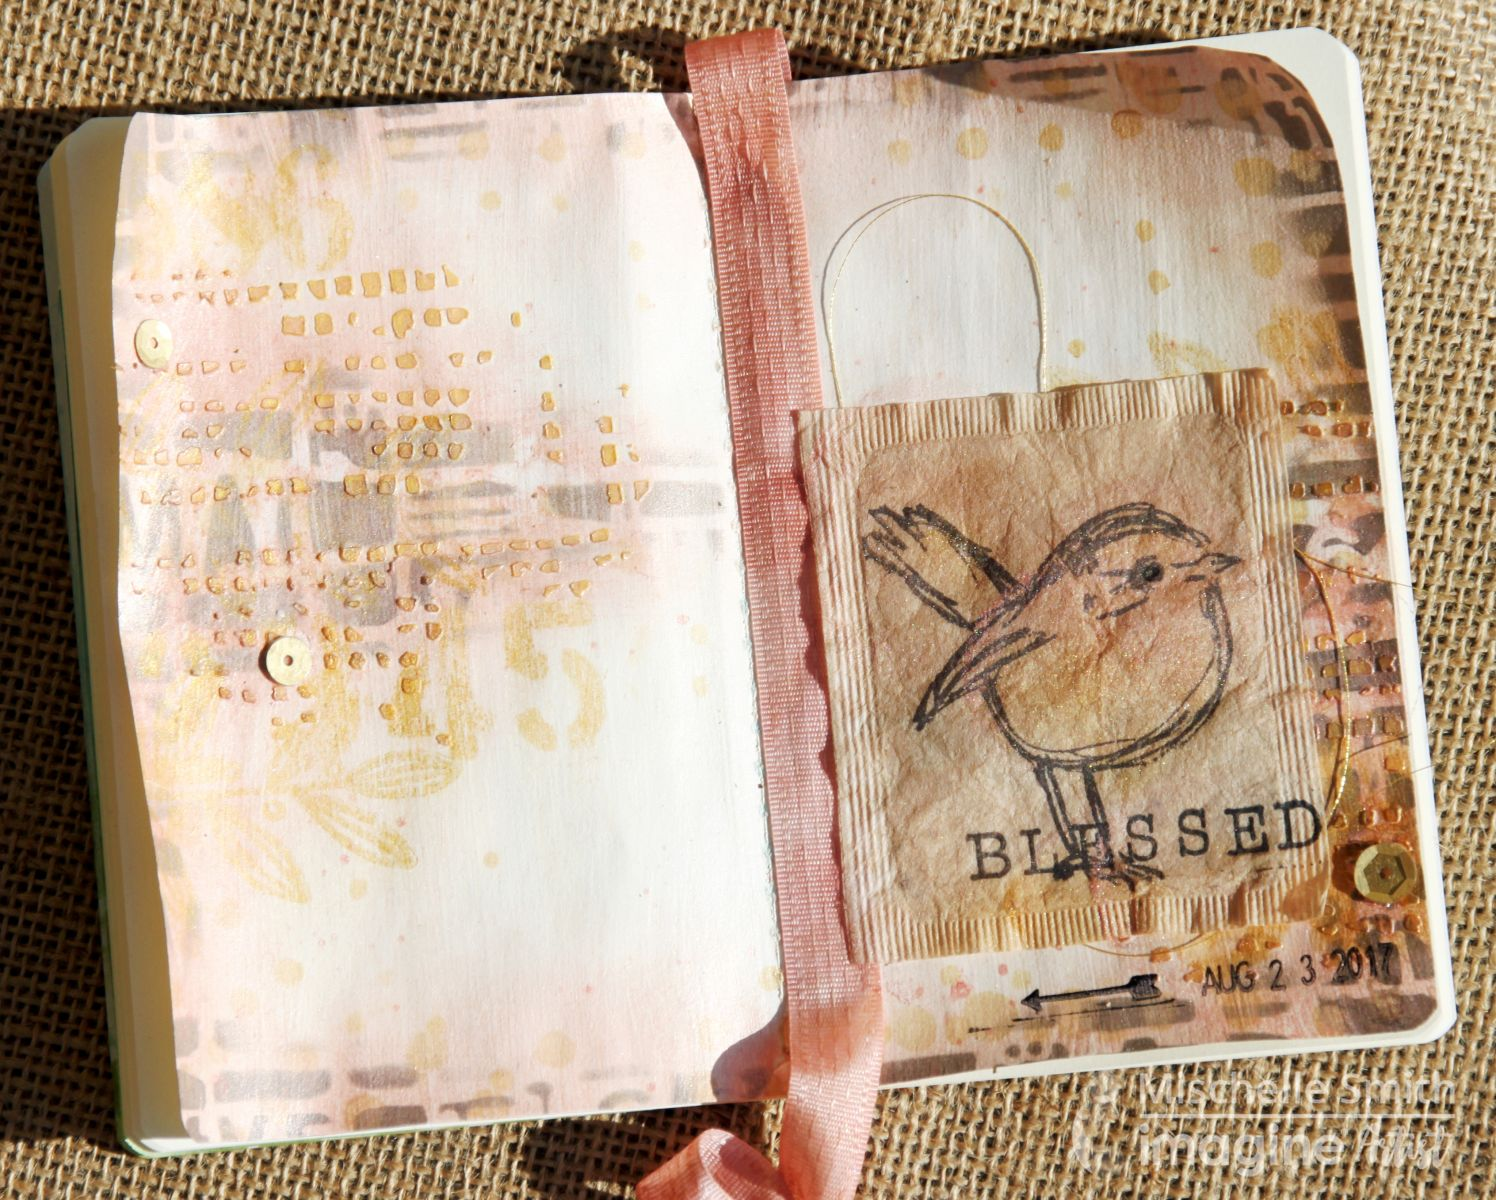 Blessed mixed media journal layout featuring gold creative medium applied through a patterned stencil.